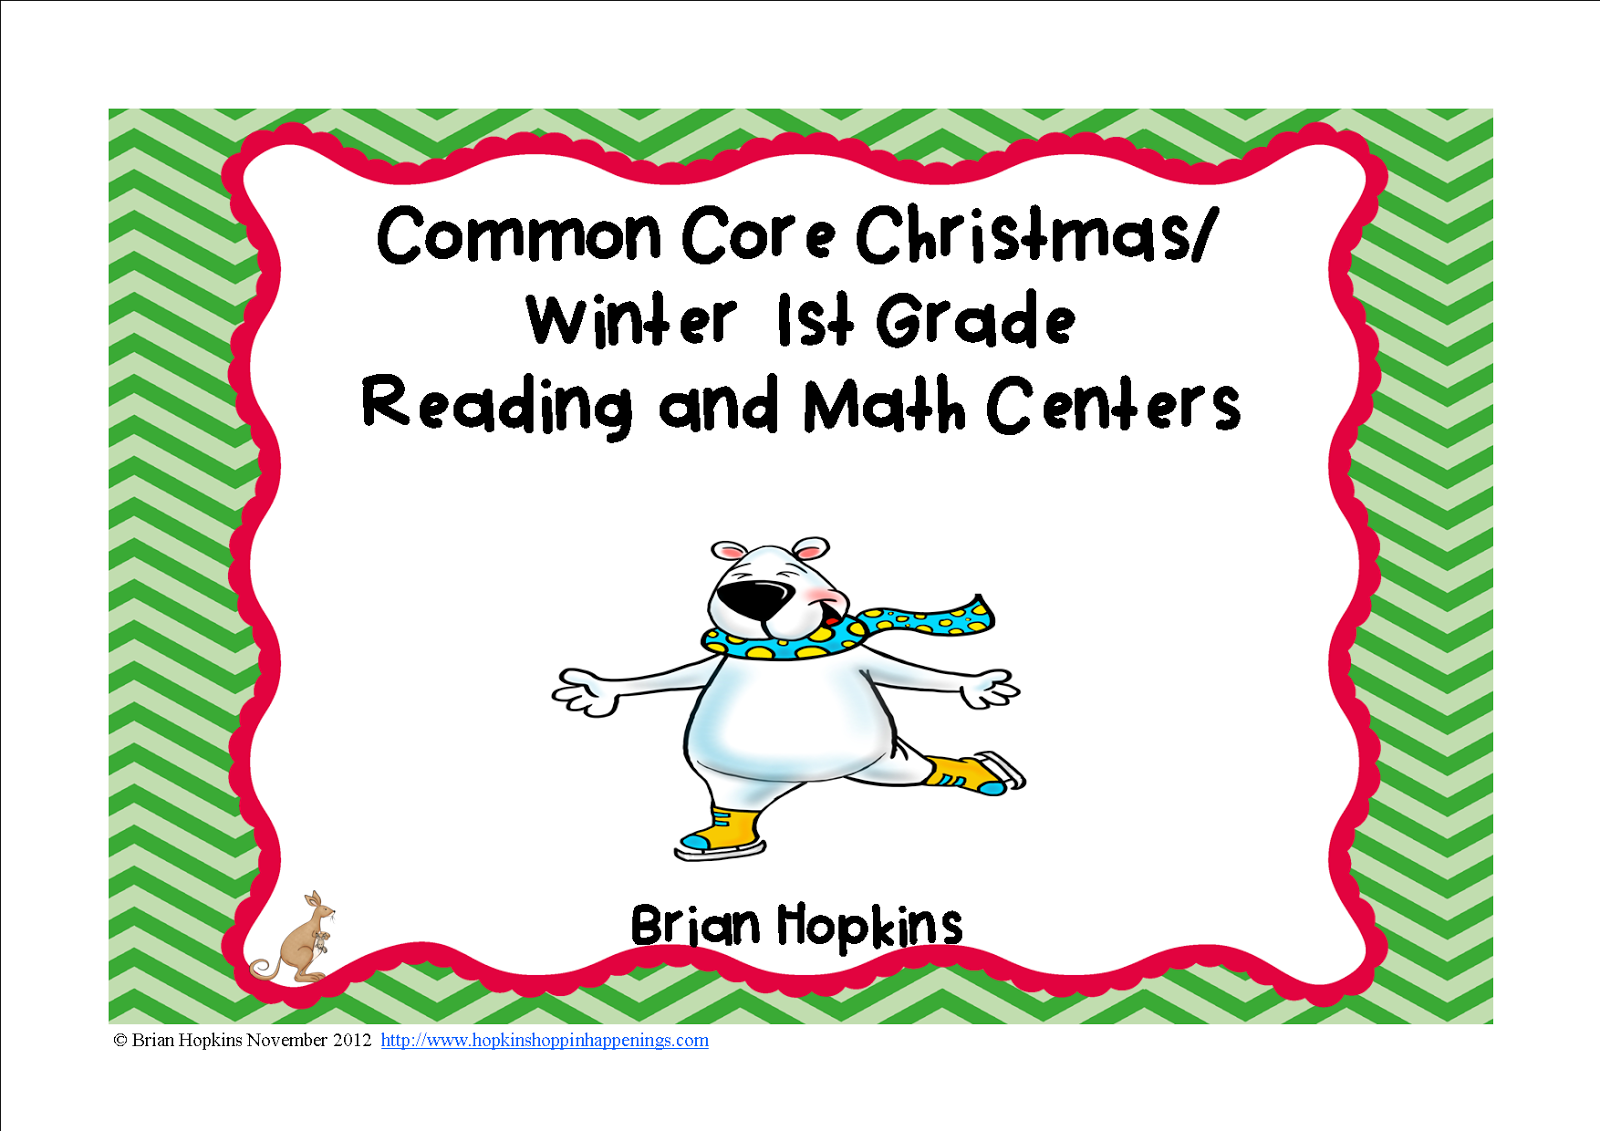 http://www.teacherspayteachers.com/Product/Christmas-Common-Core-1st-Grade-Reading-and-Math-Centers-416625